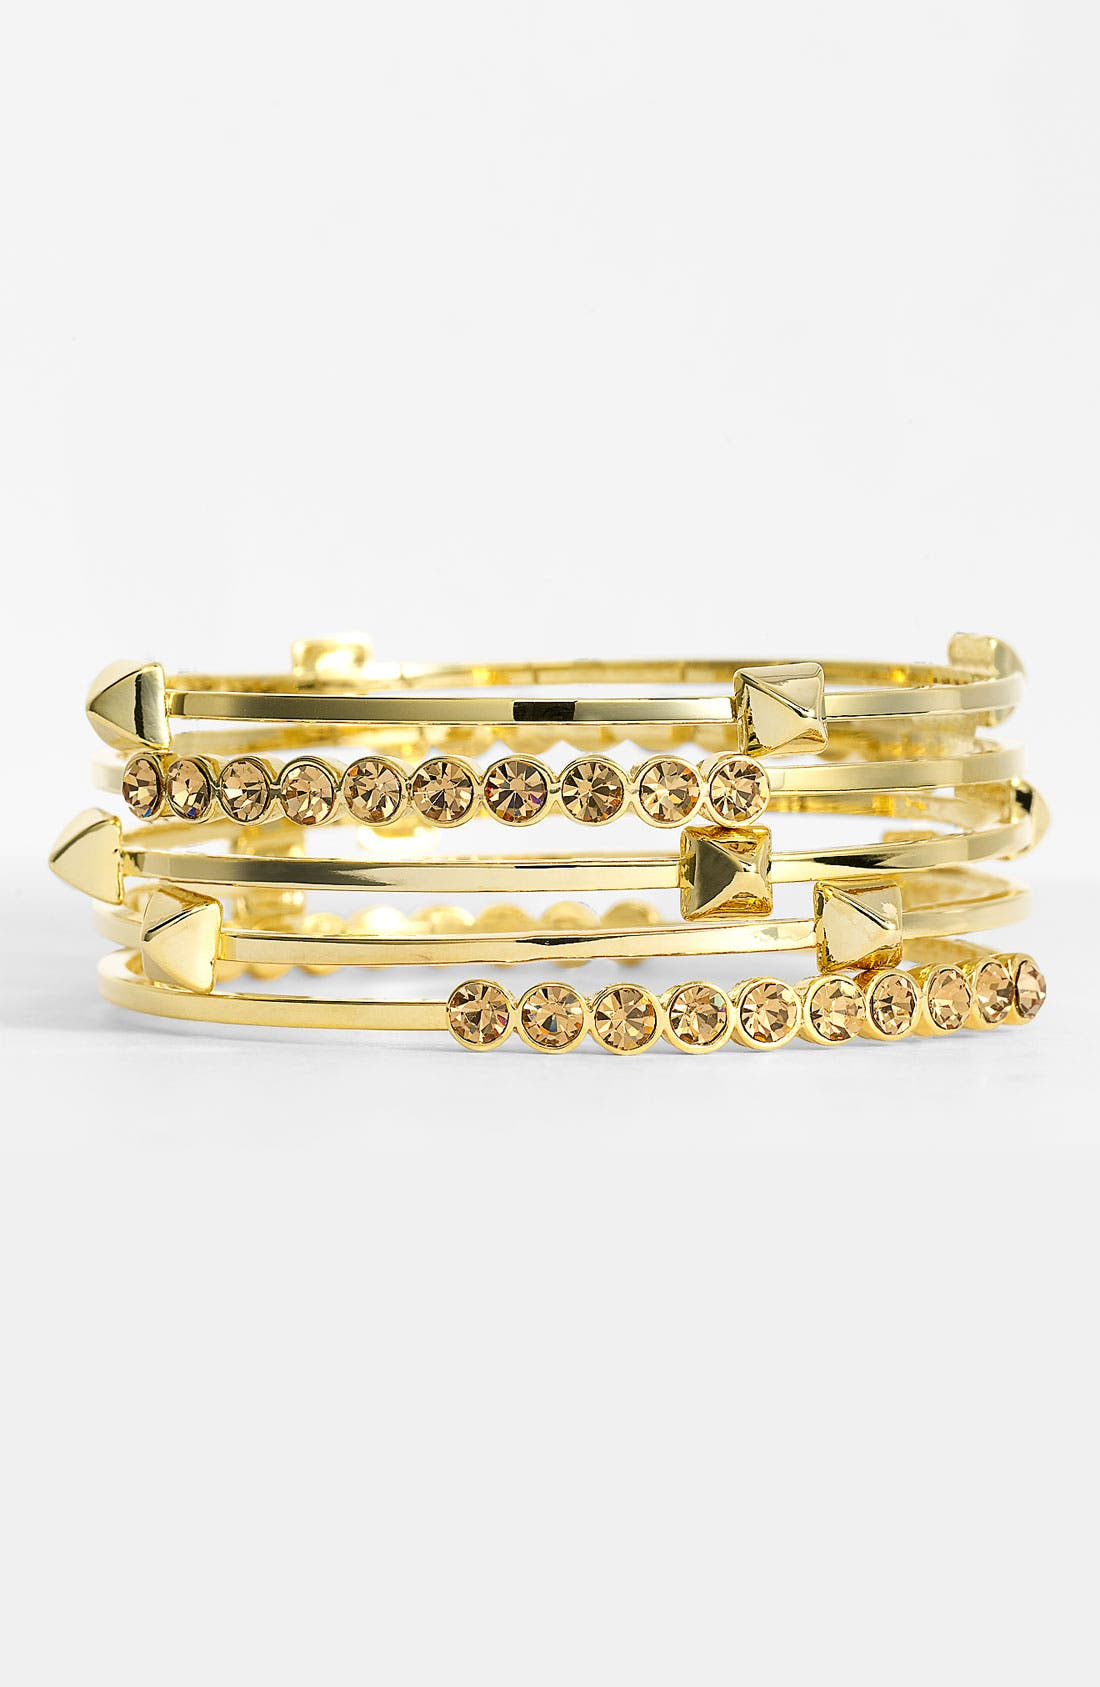 Main Image - Vince Camuto 'Basics' Stud & Crystal Bangles (Set of 5)